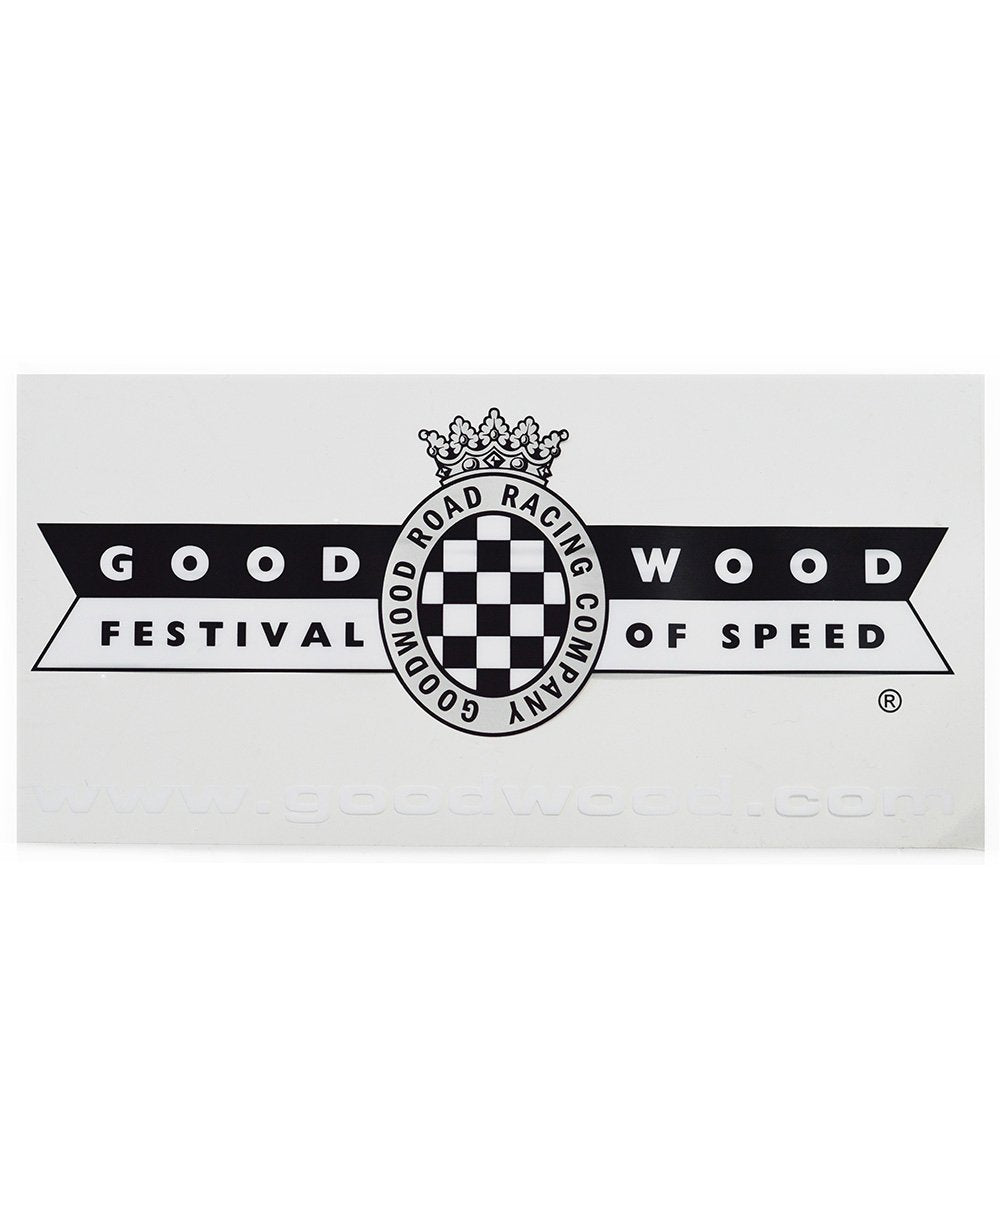 Goodwood Car Sticker Festival Of Speed